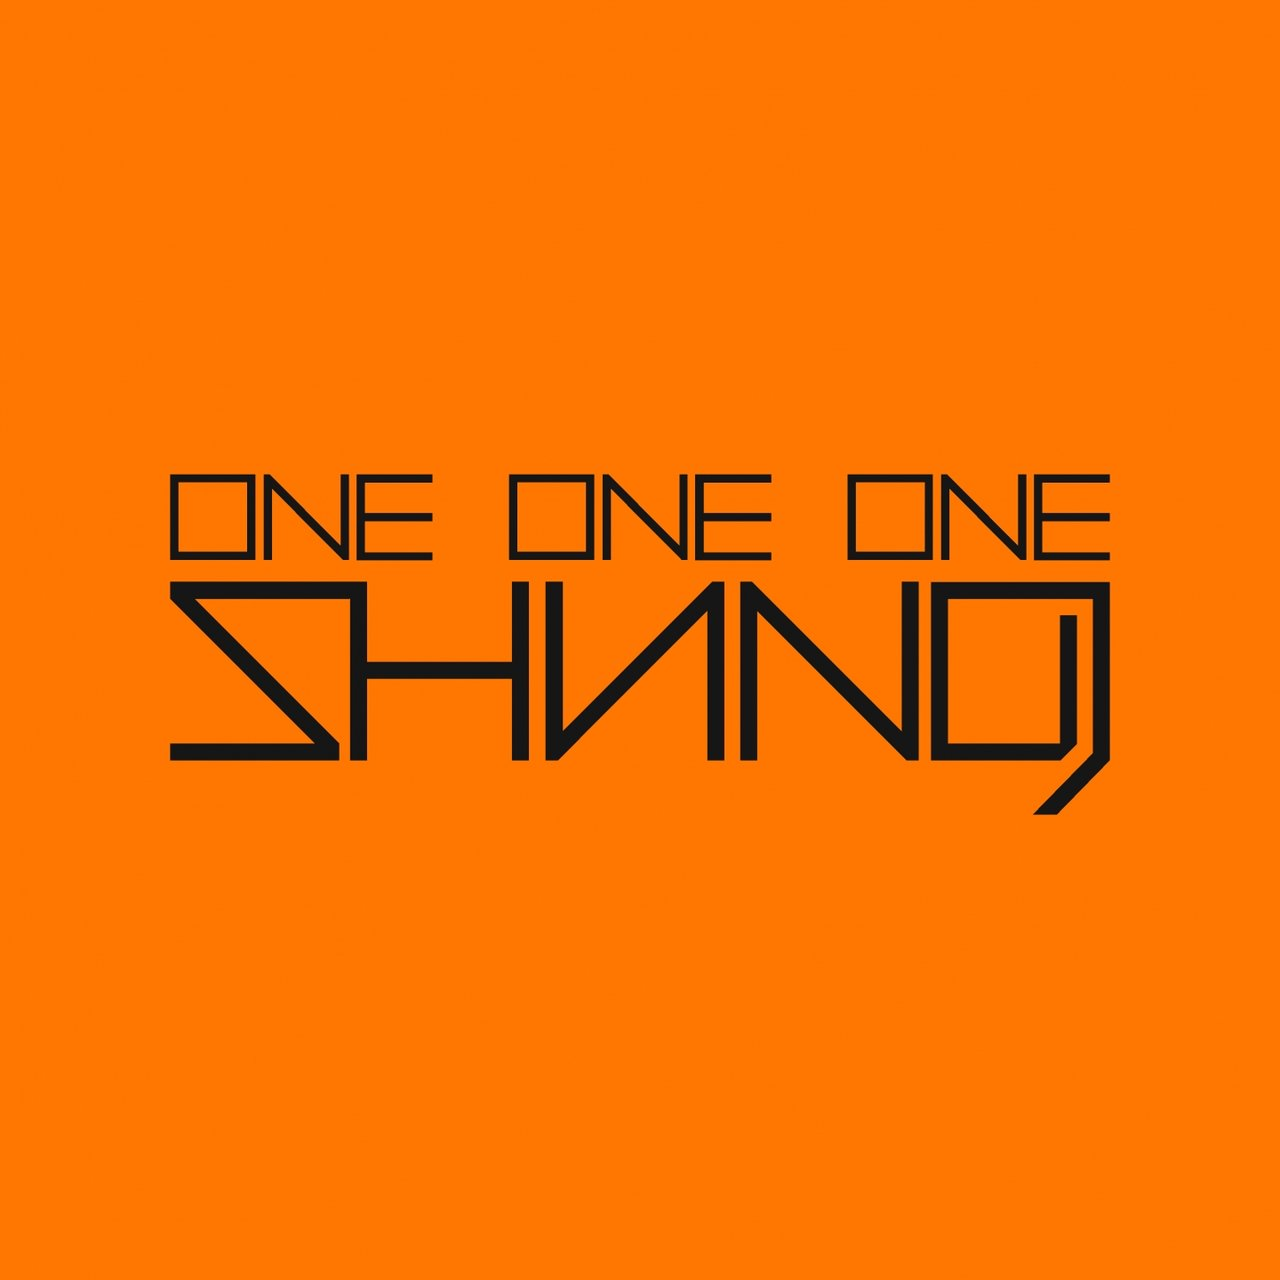 One One One - Audio Commentary (Norwegian Version)